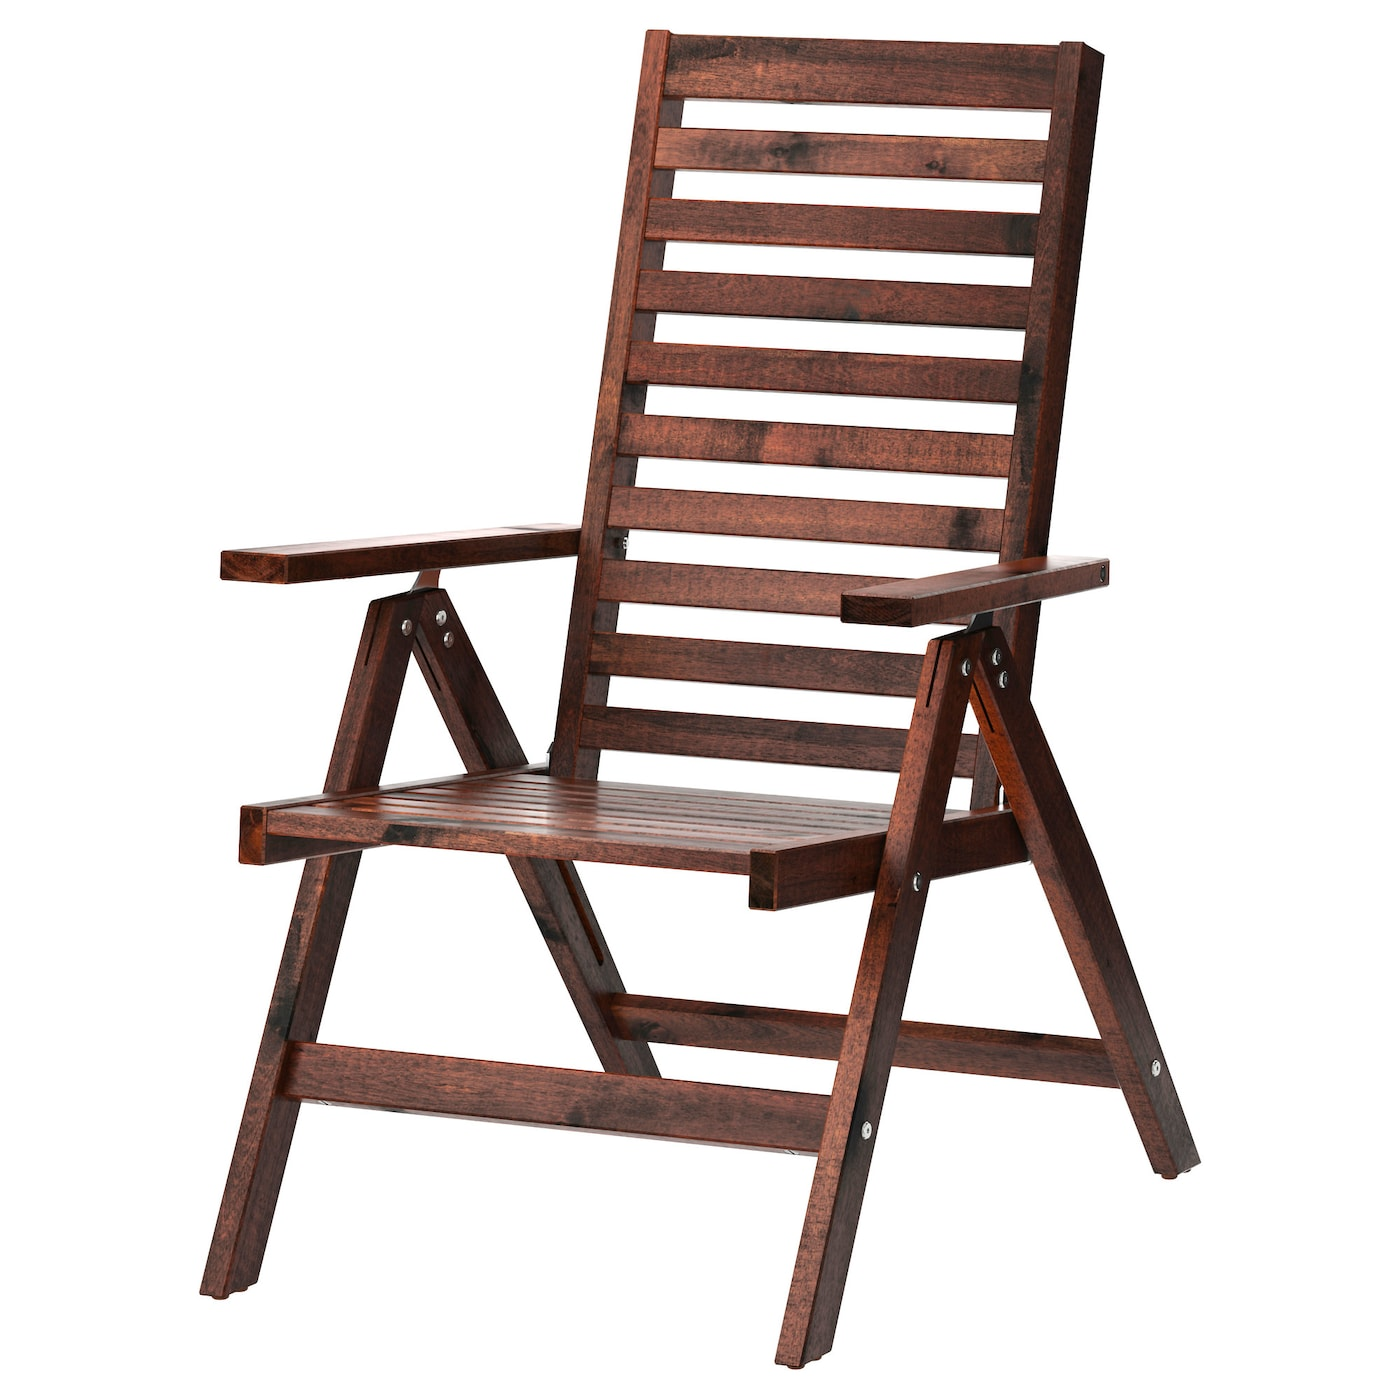 Outstanding Shop For Furniture Lighting Home Accessories More Ikea Squirreltailoven Fun Painted Chair Ideas Images Squirreltailovenorg